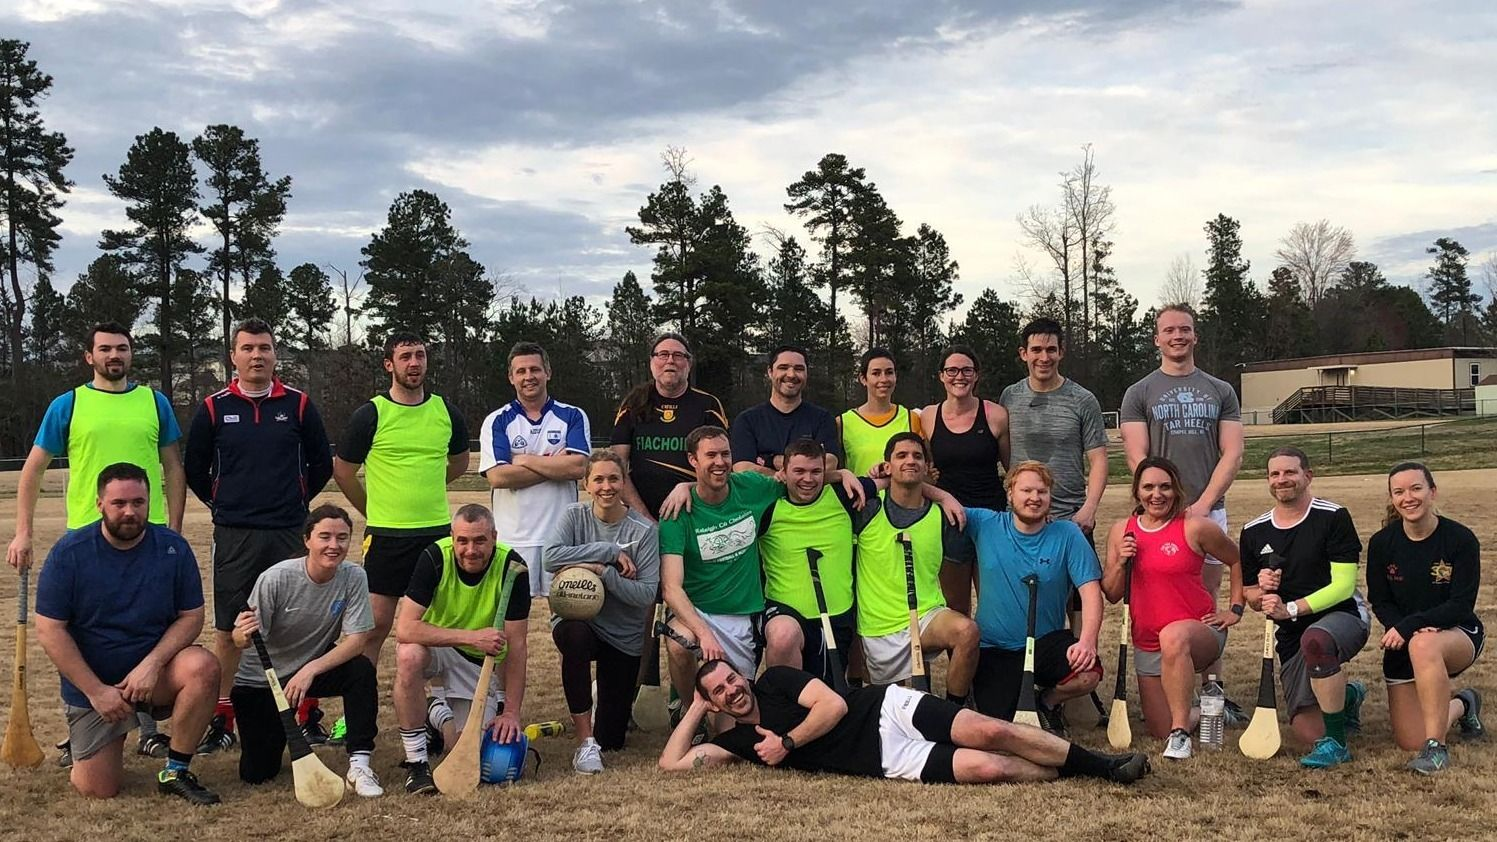 Play Irish Sports in the Triangle - Men and Women